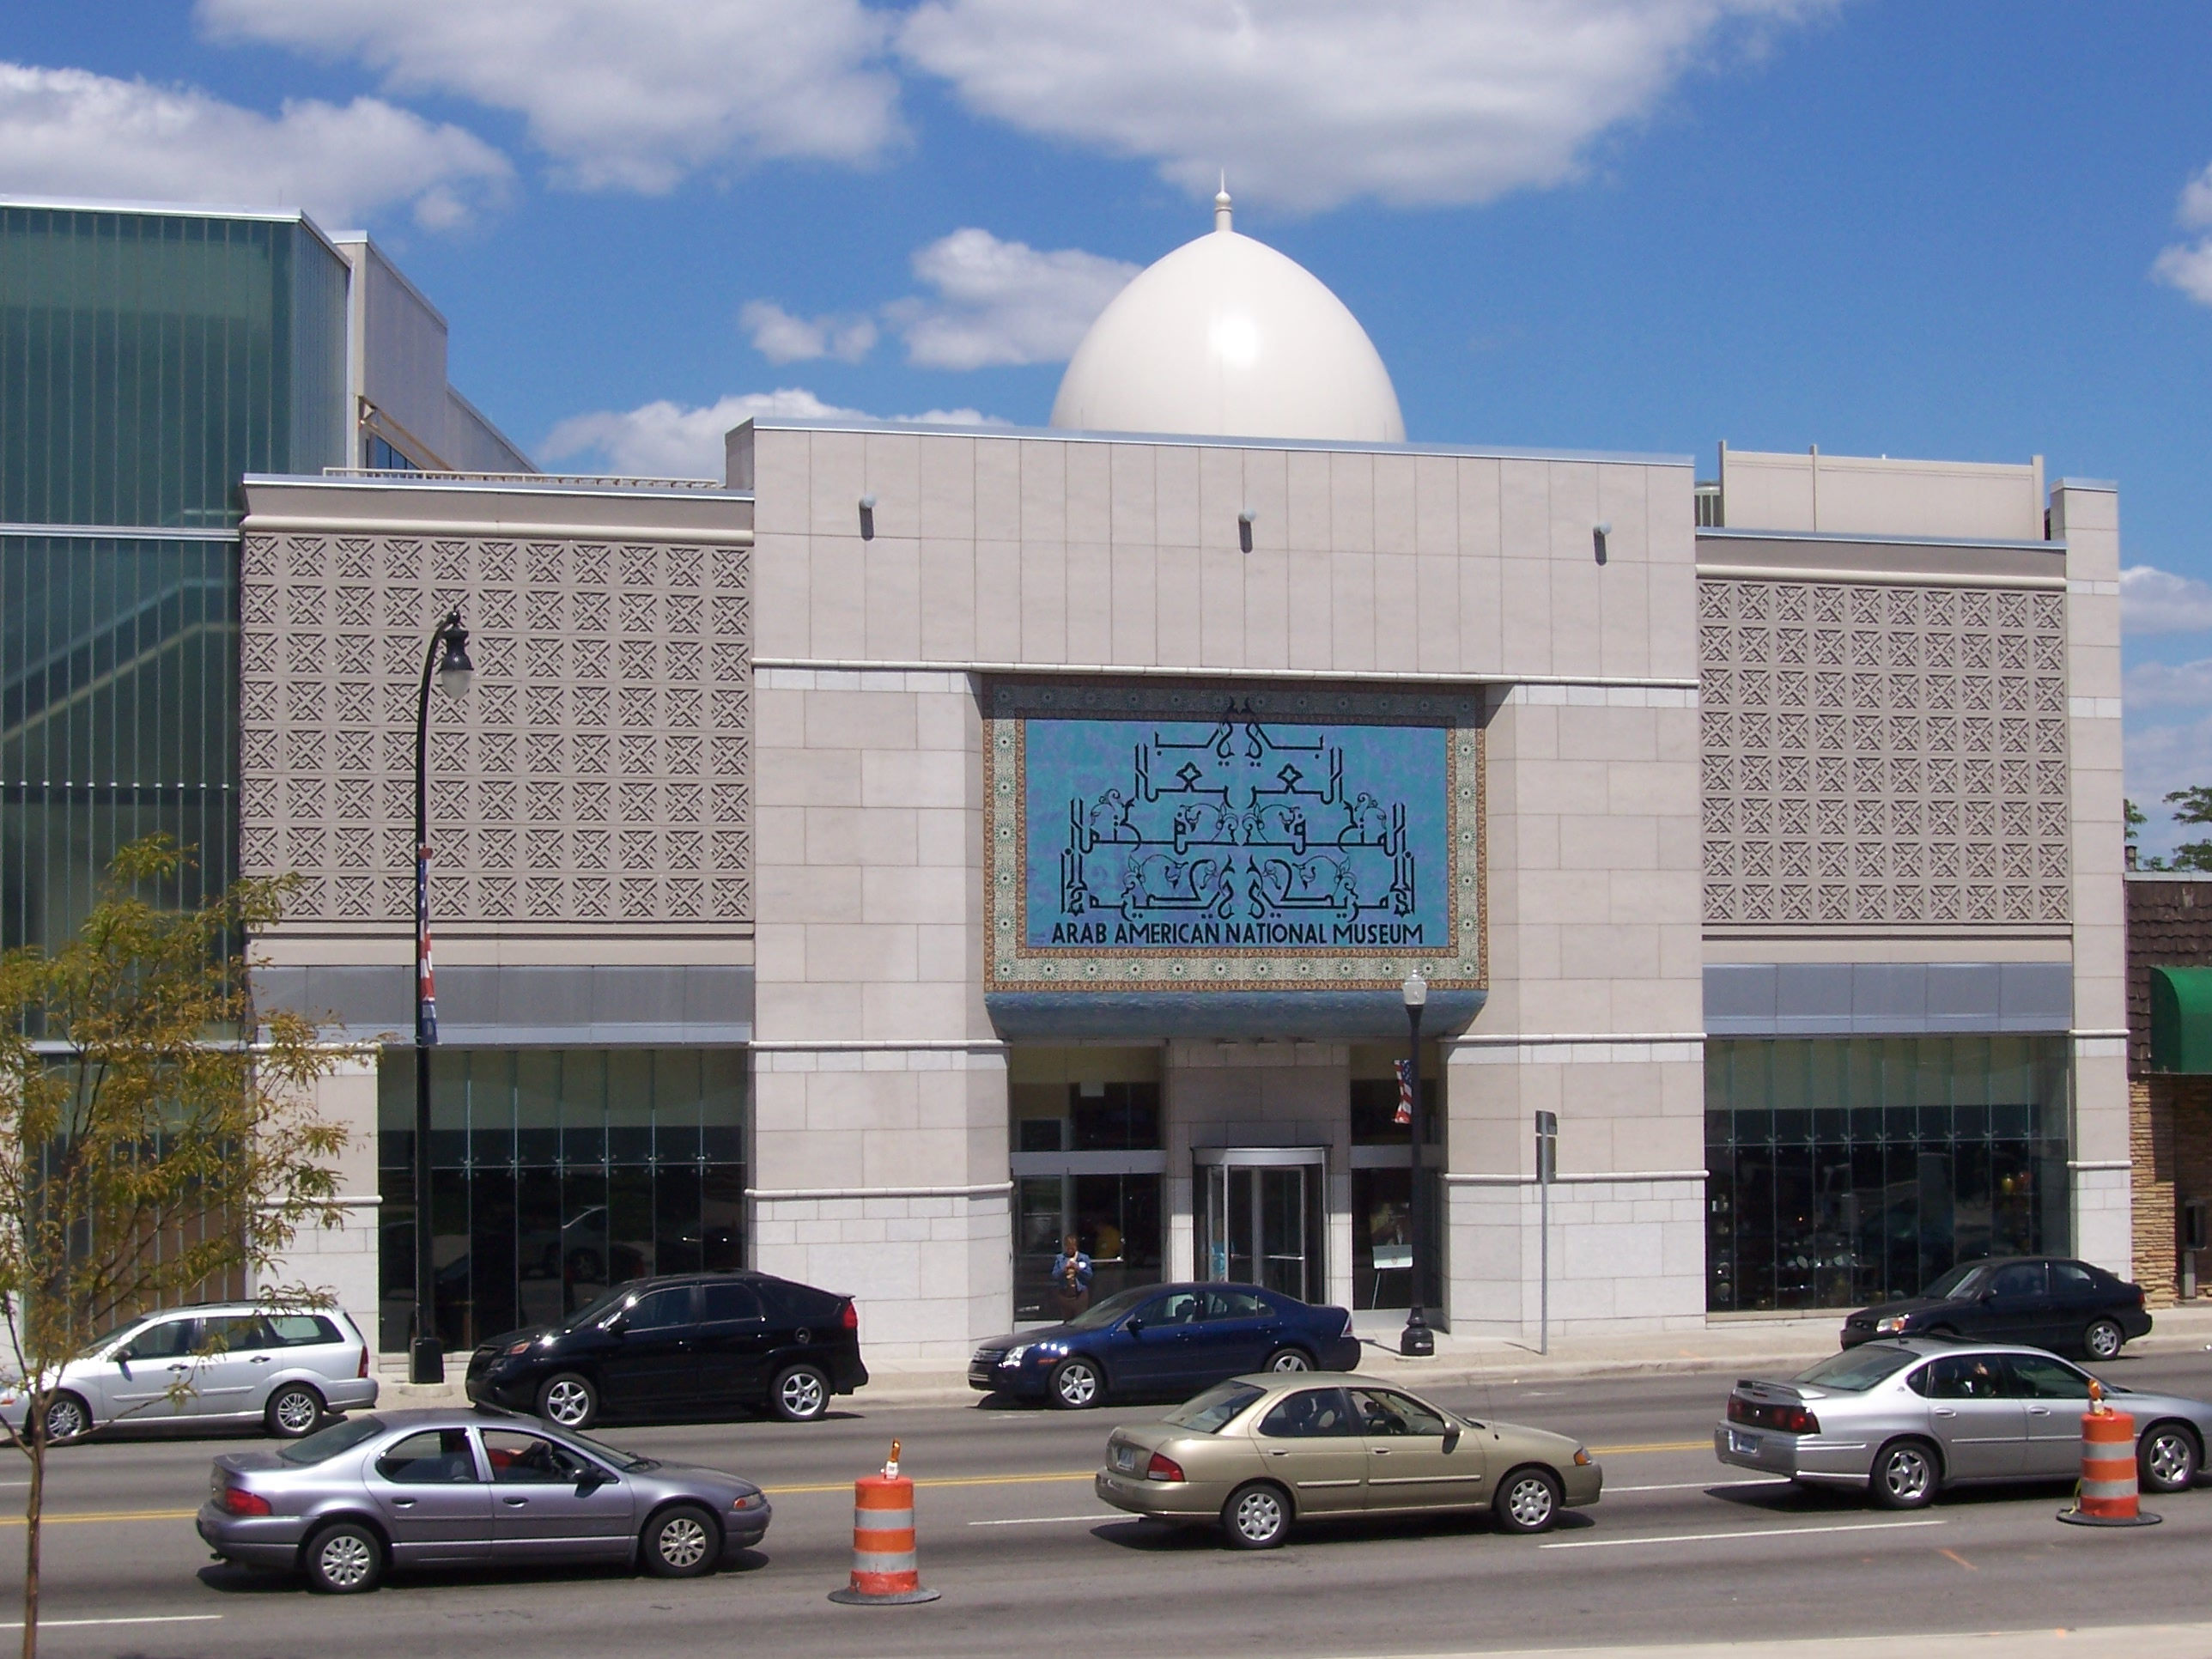 The Arab American National museum facade made of white stone with a dome